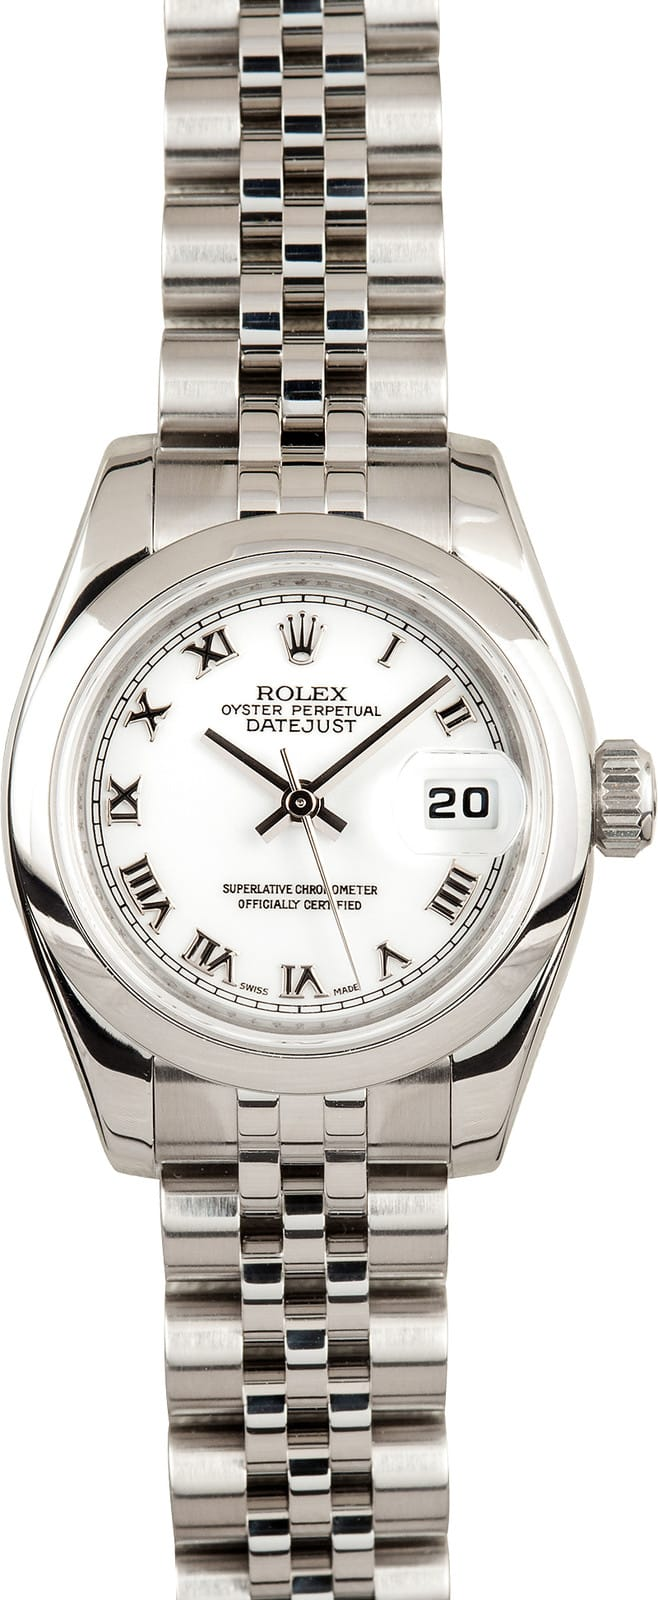 Certified Pre Owned >> Rolex Womens Datejust 179160 - Certified Pre-Owned